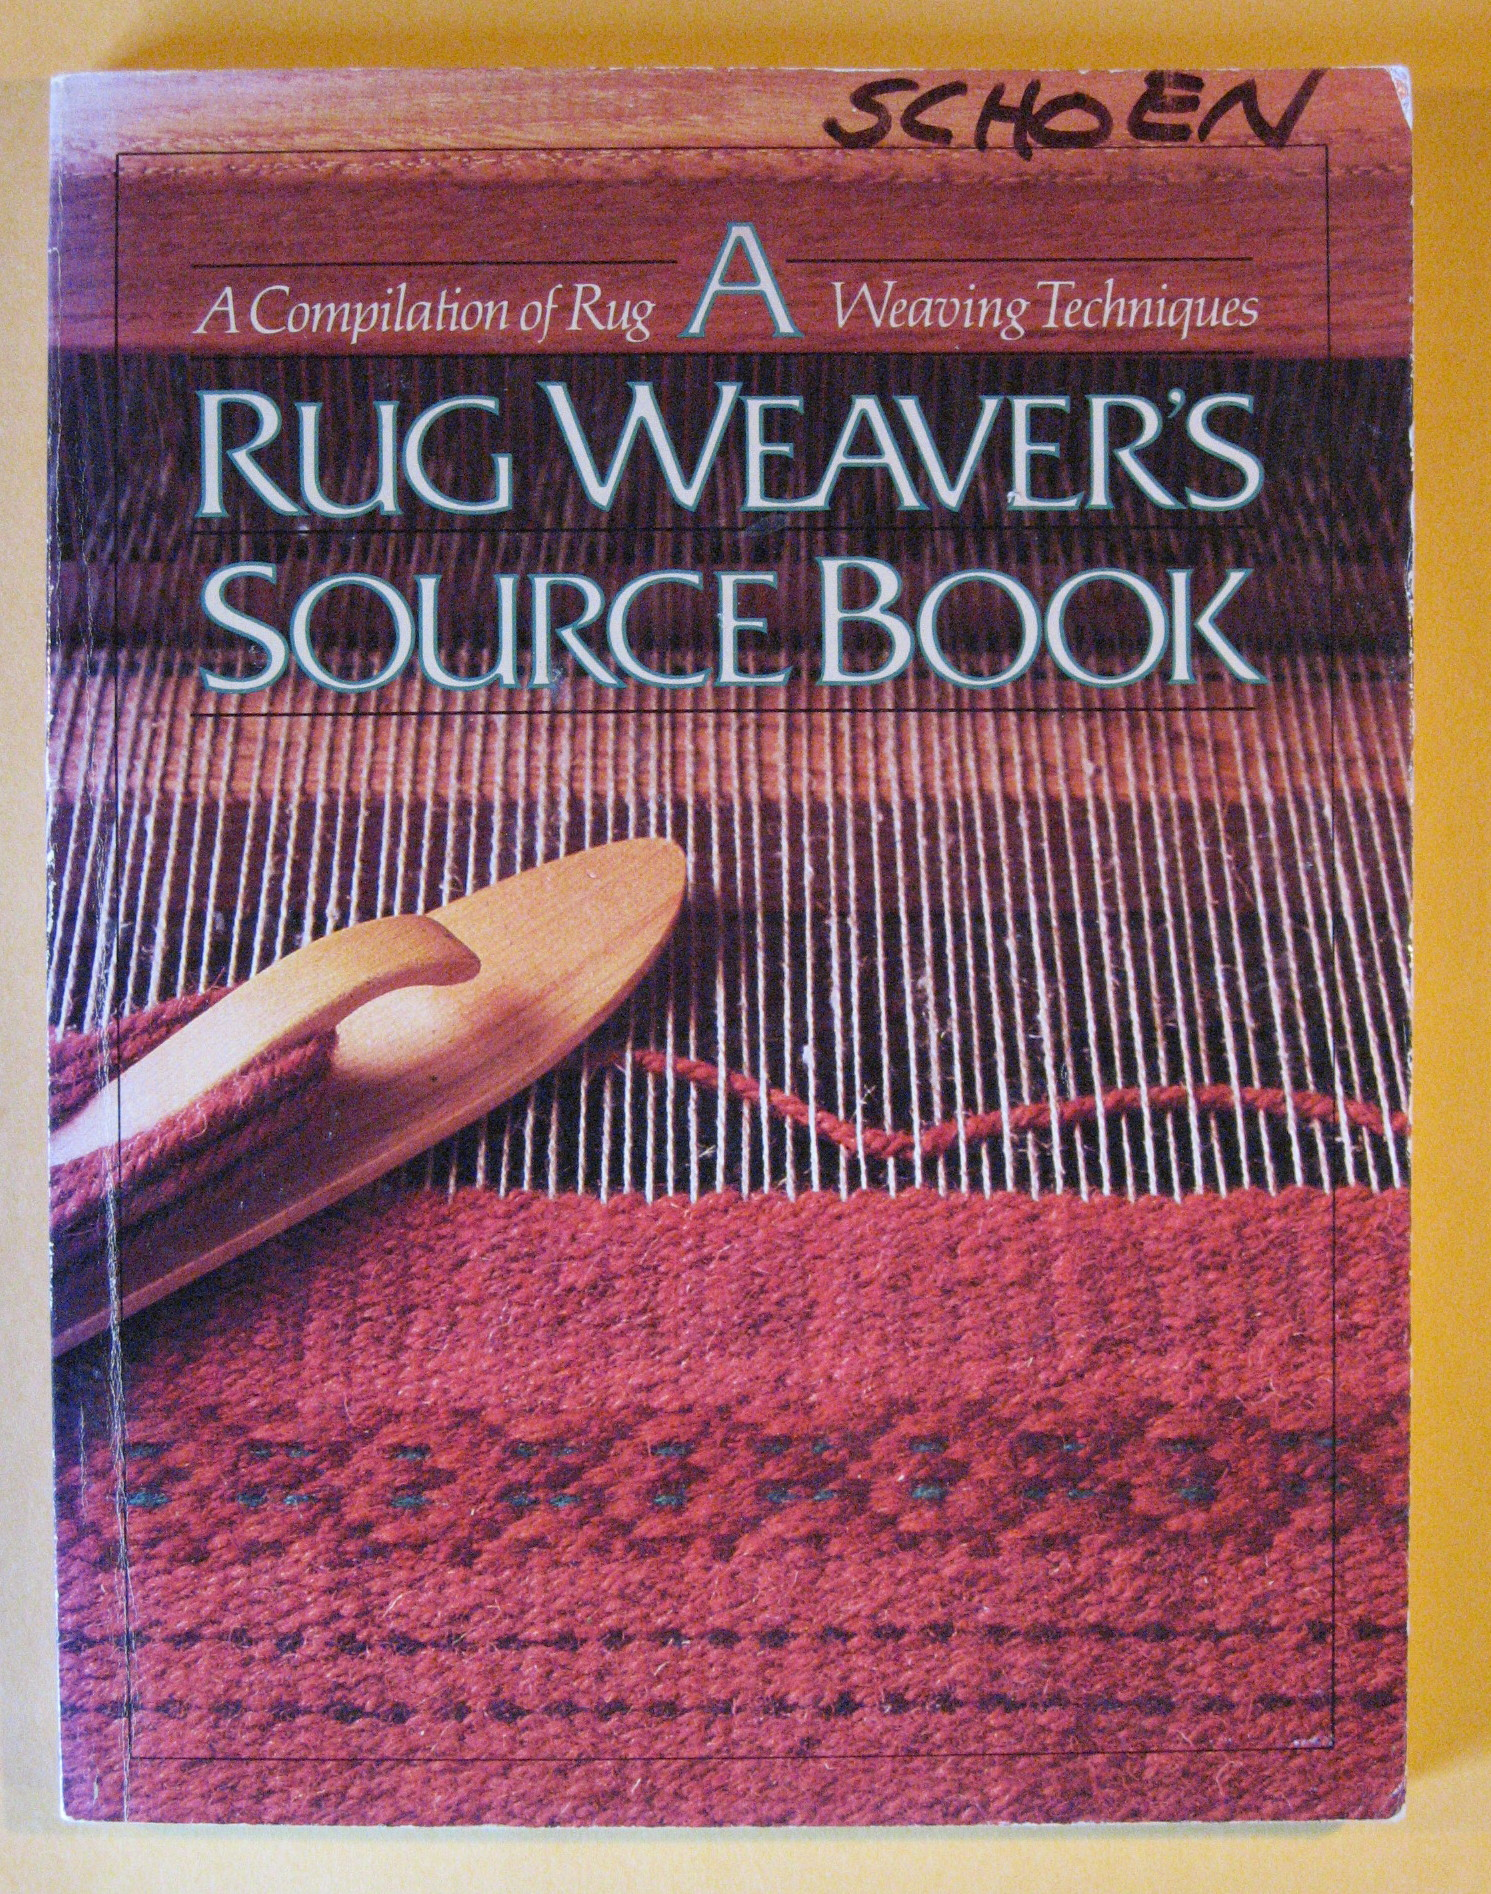 Rug Weaver's Source Book:  A Compilation of Rug Weaver's Techniques, Ligon, Linda Collier  (editor)